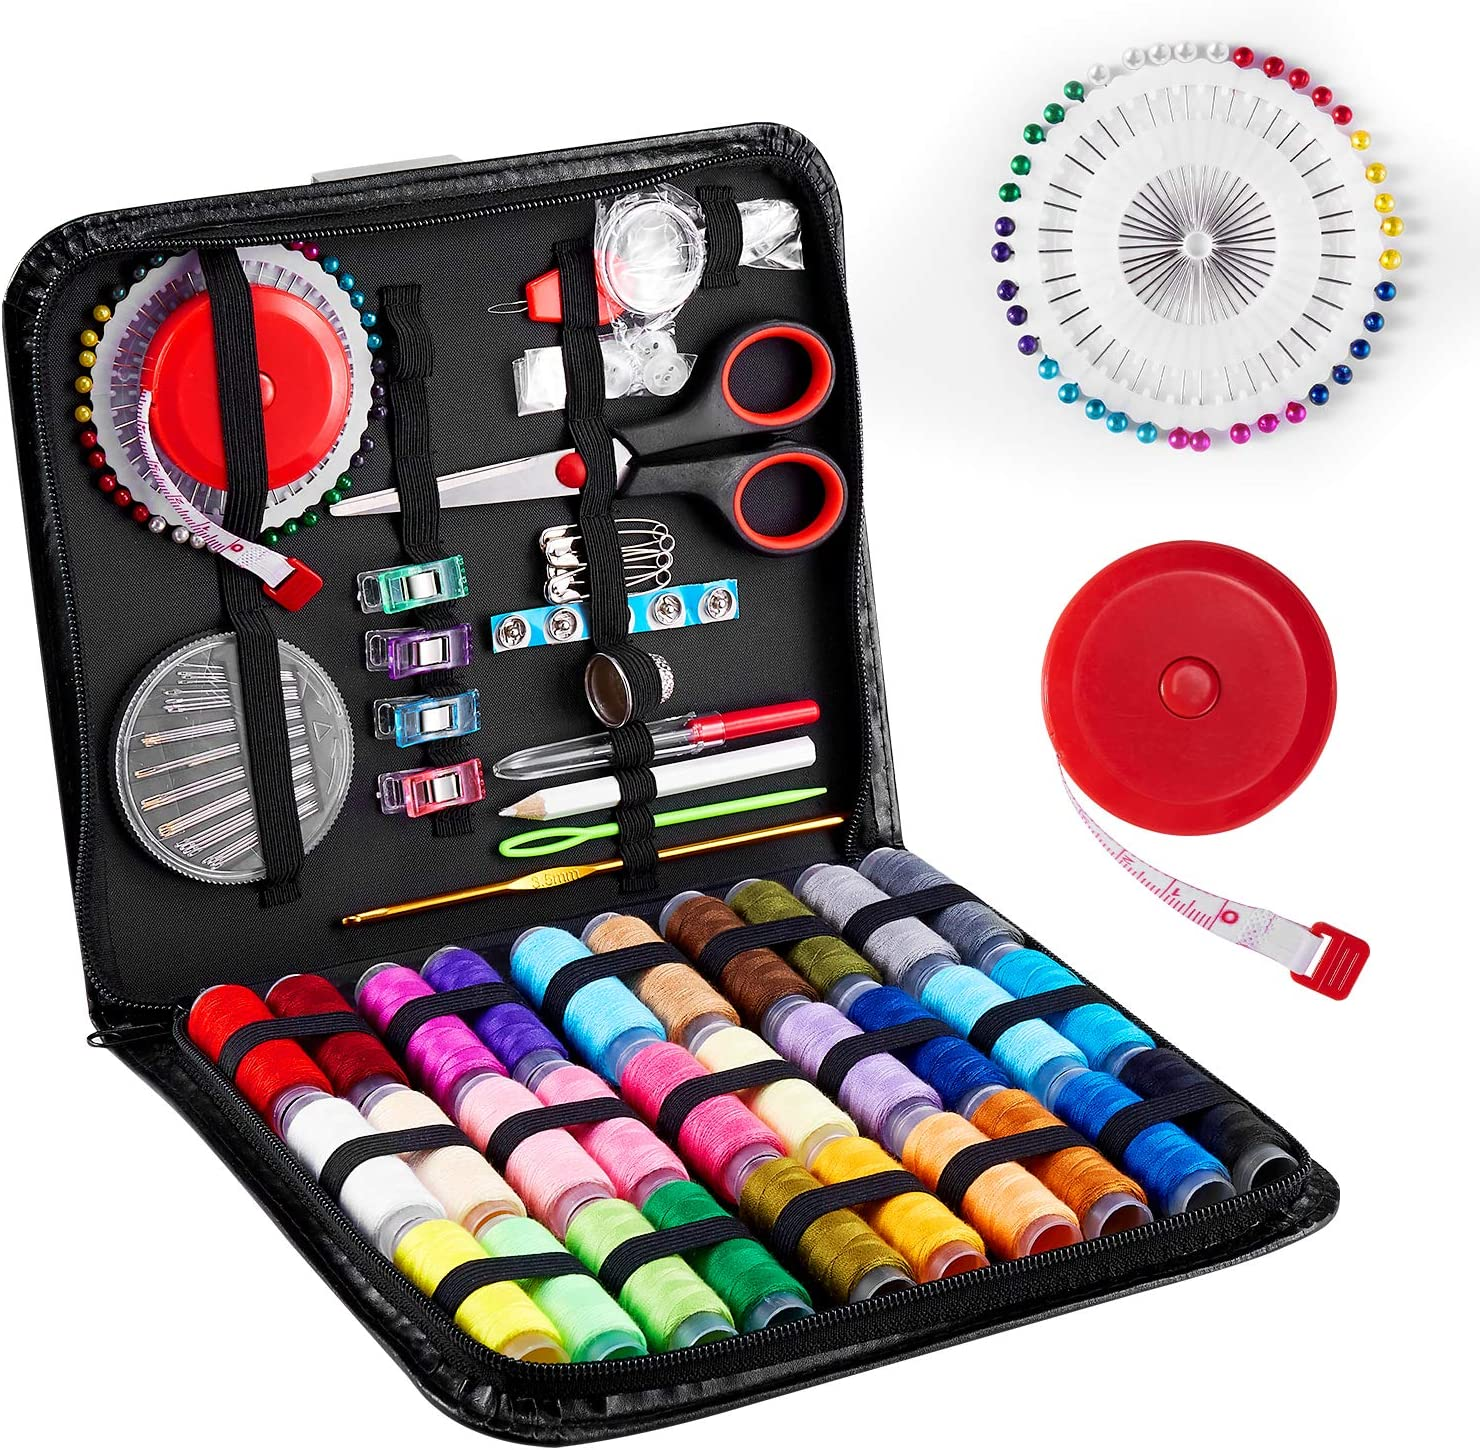 Sewing Kit Finally popular brand Premium 1 year warranty Thread with Needle Portable and